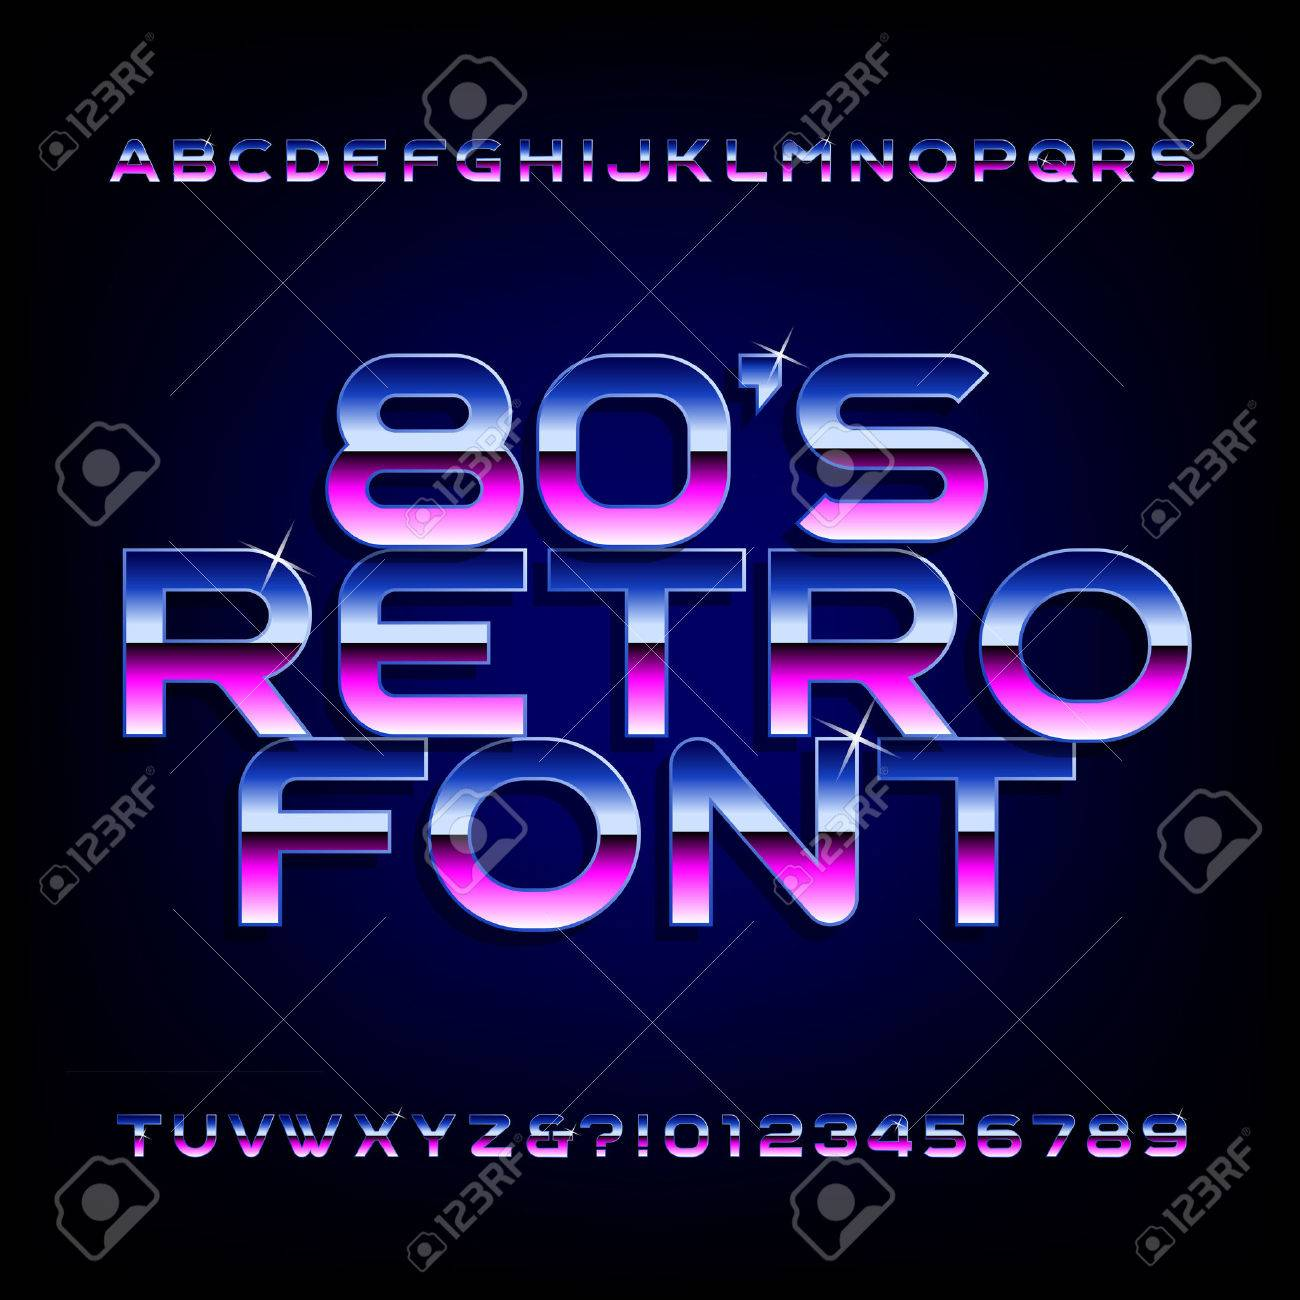 80's retro alphabet font. Metallic effect shiny letters and numbers. - 58457548